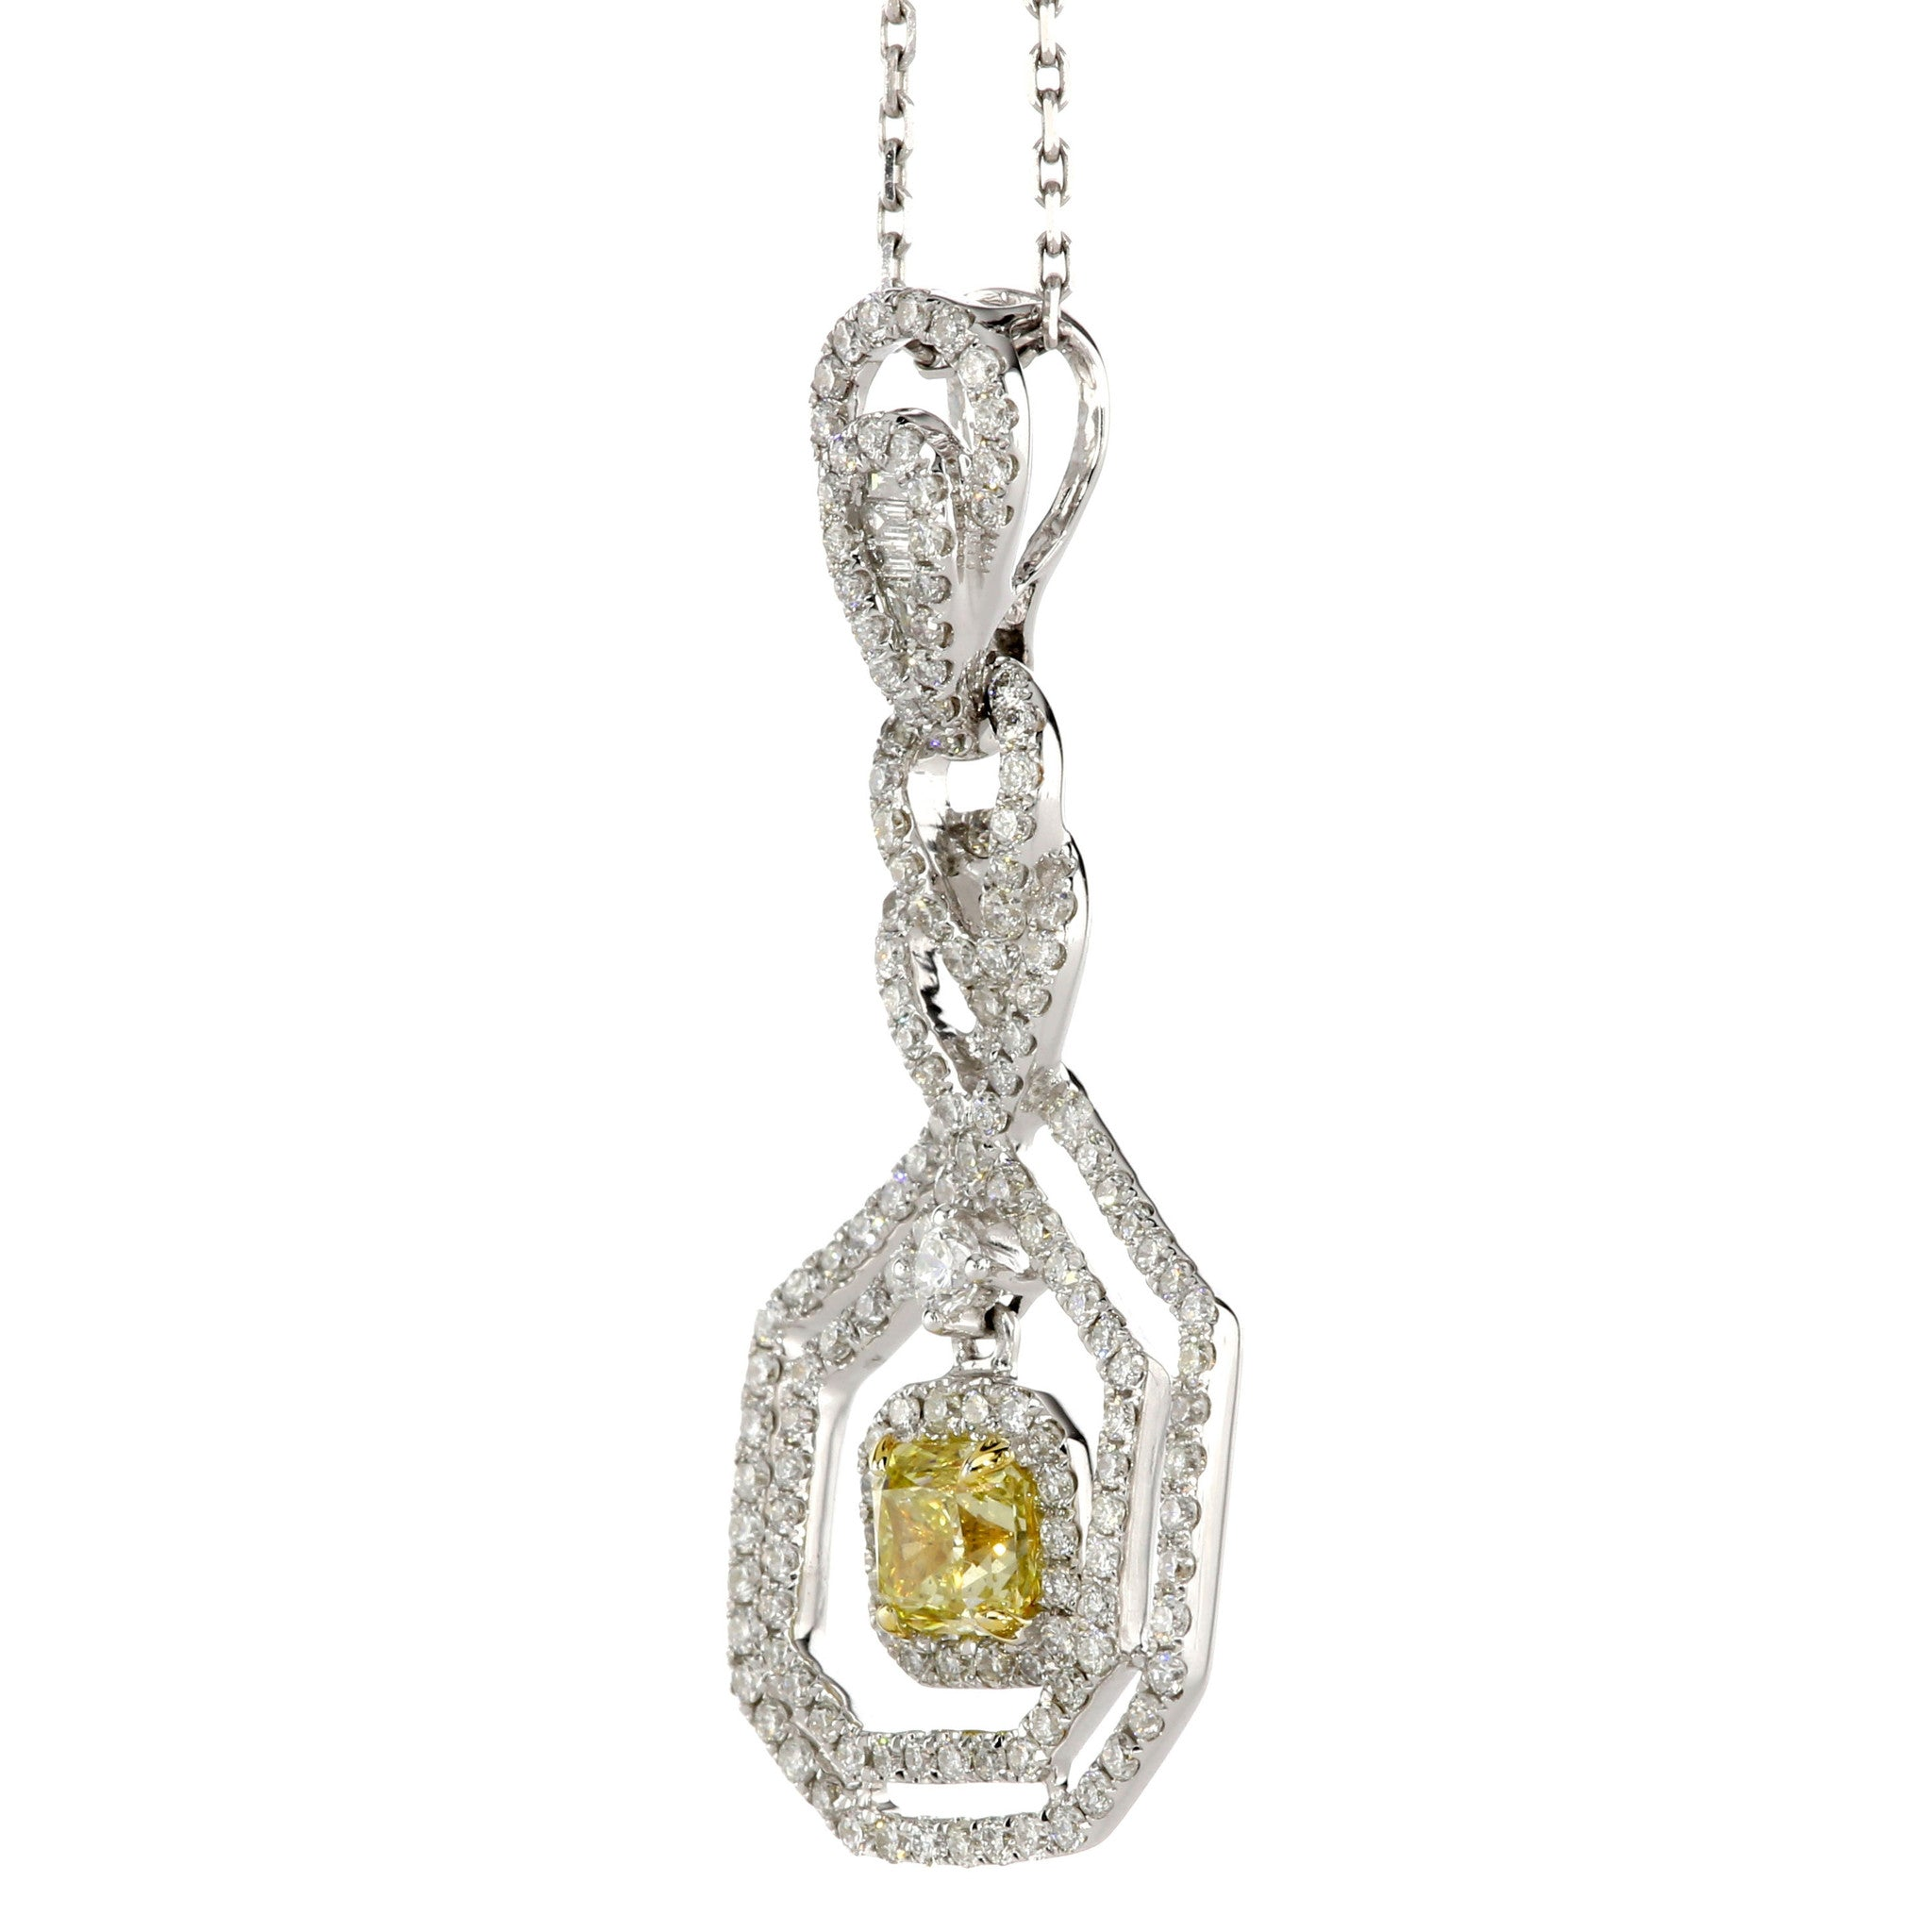 rosenberg diamond yellow shape pear galleries round carat canary cut drop diamonds necklace gia fancy